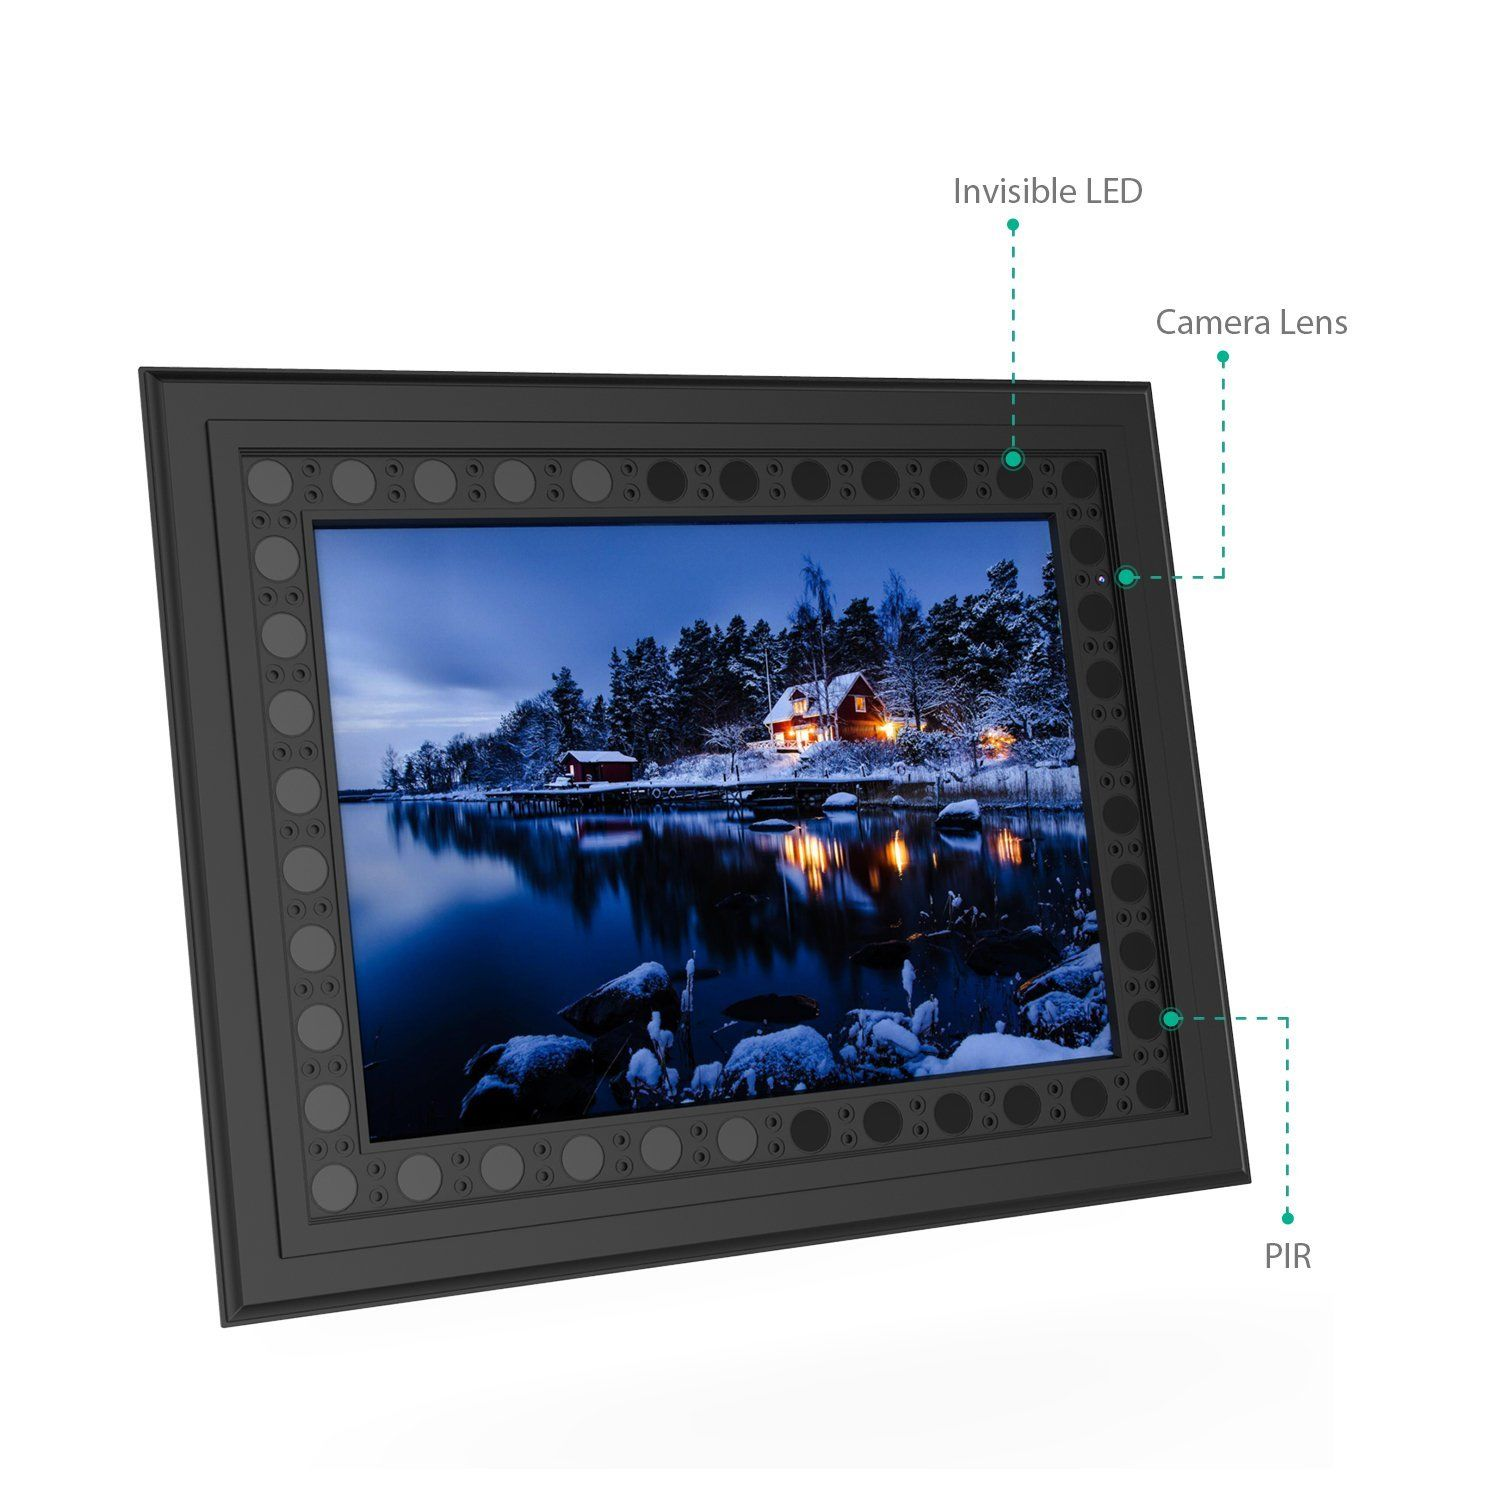 HD 720P Photo Frame Hidden Spy Camera - Main